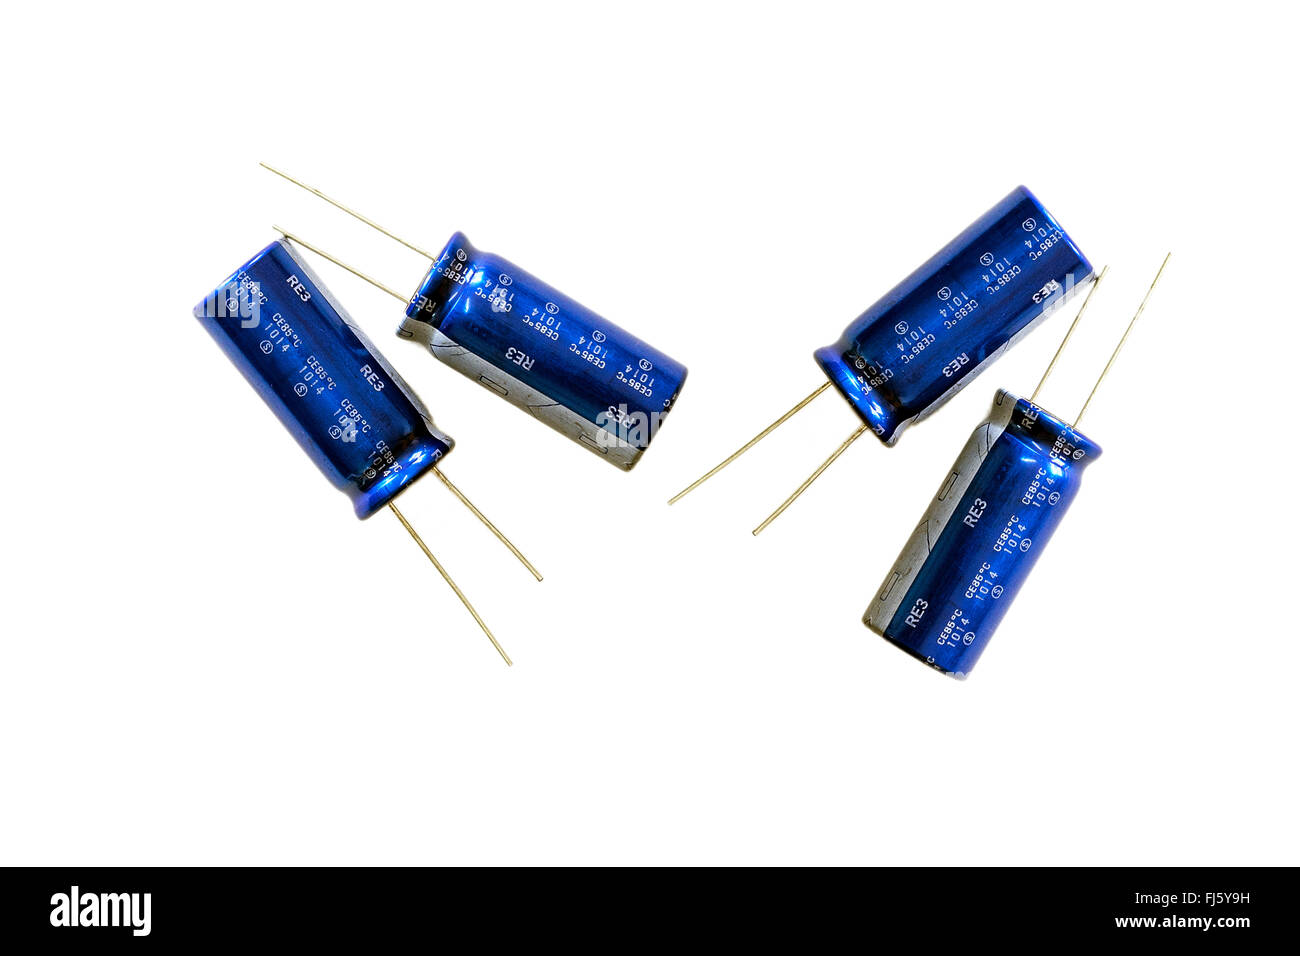 Group of capacitors isolated on white background. - Stock Image